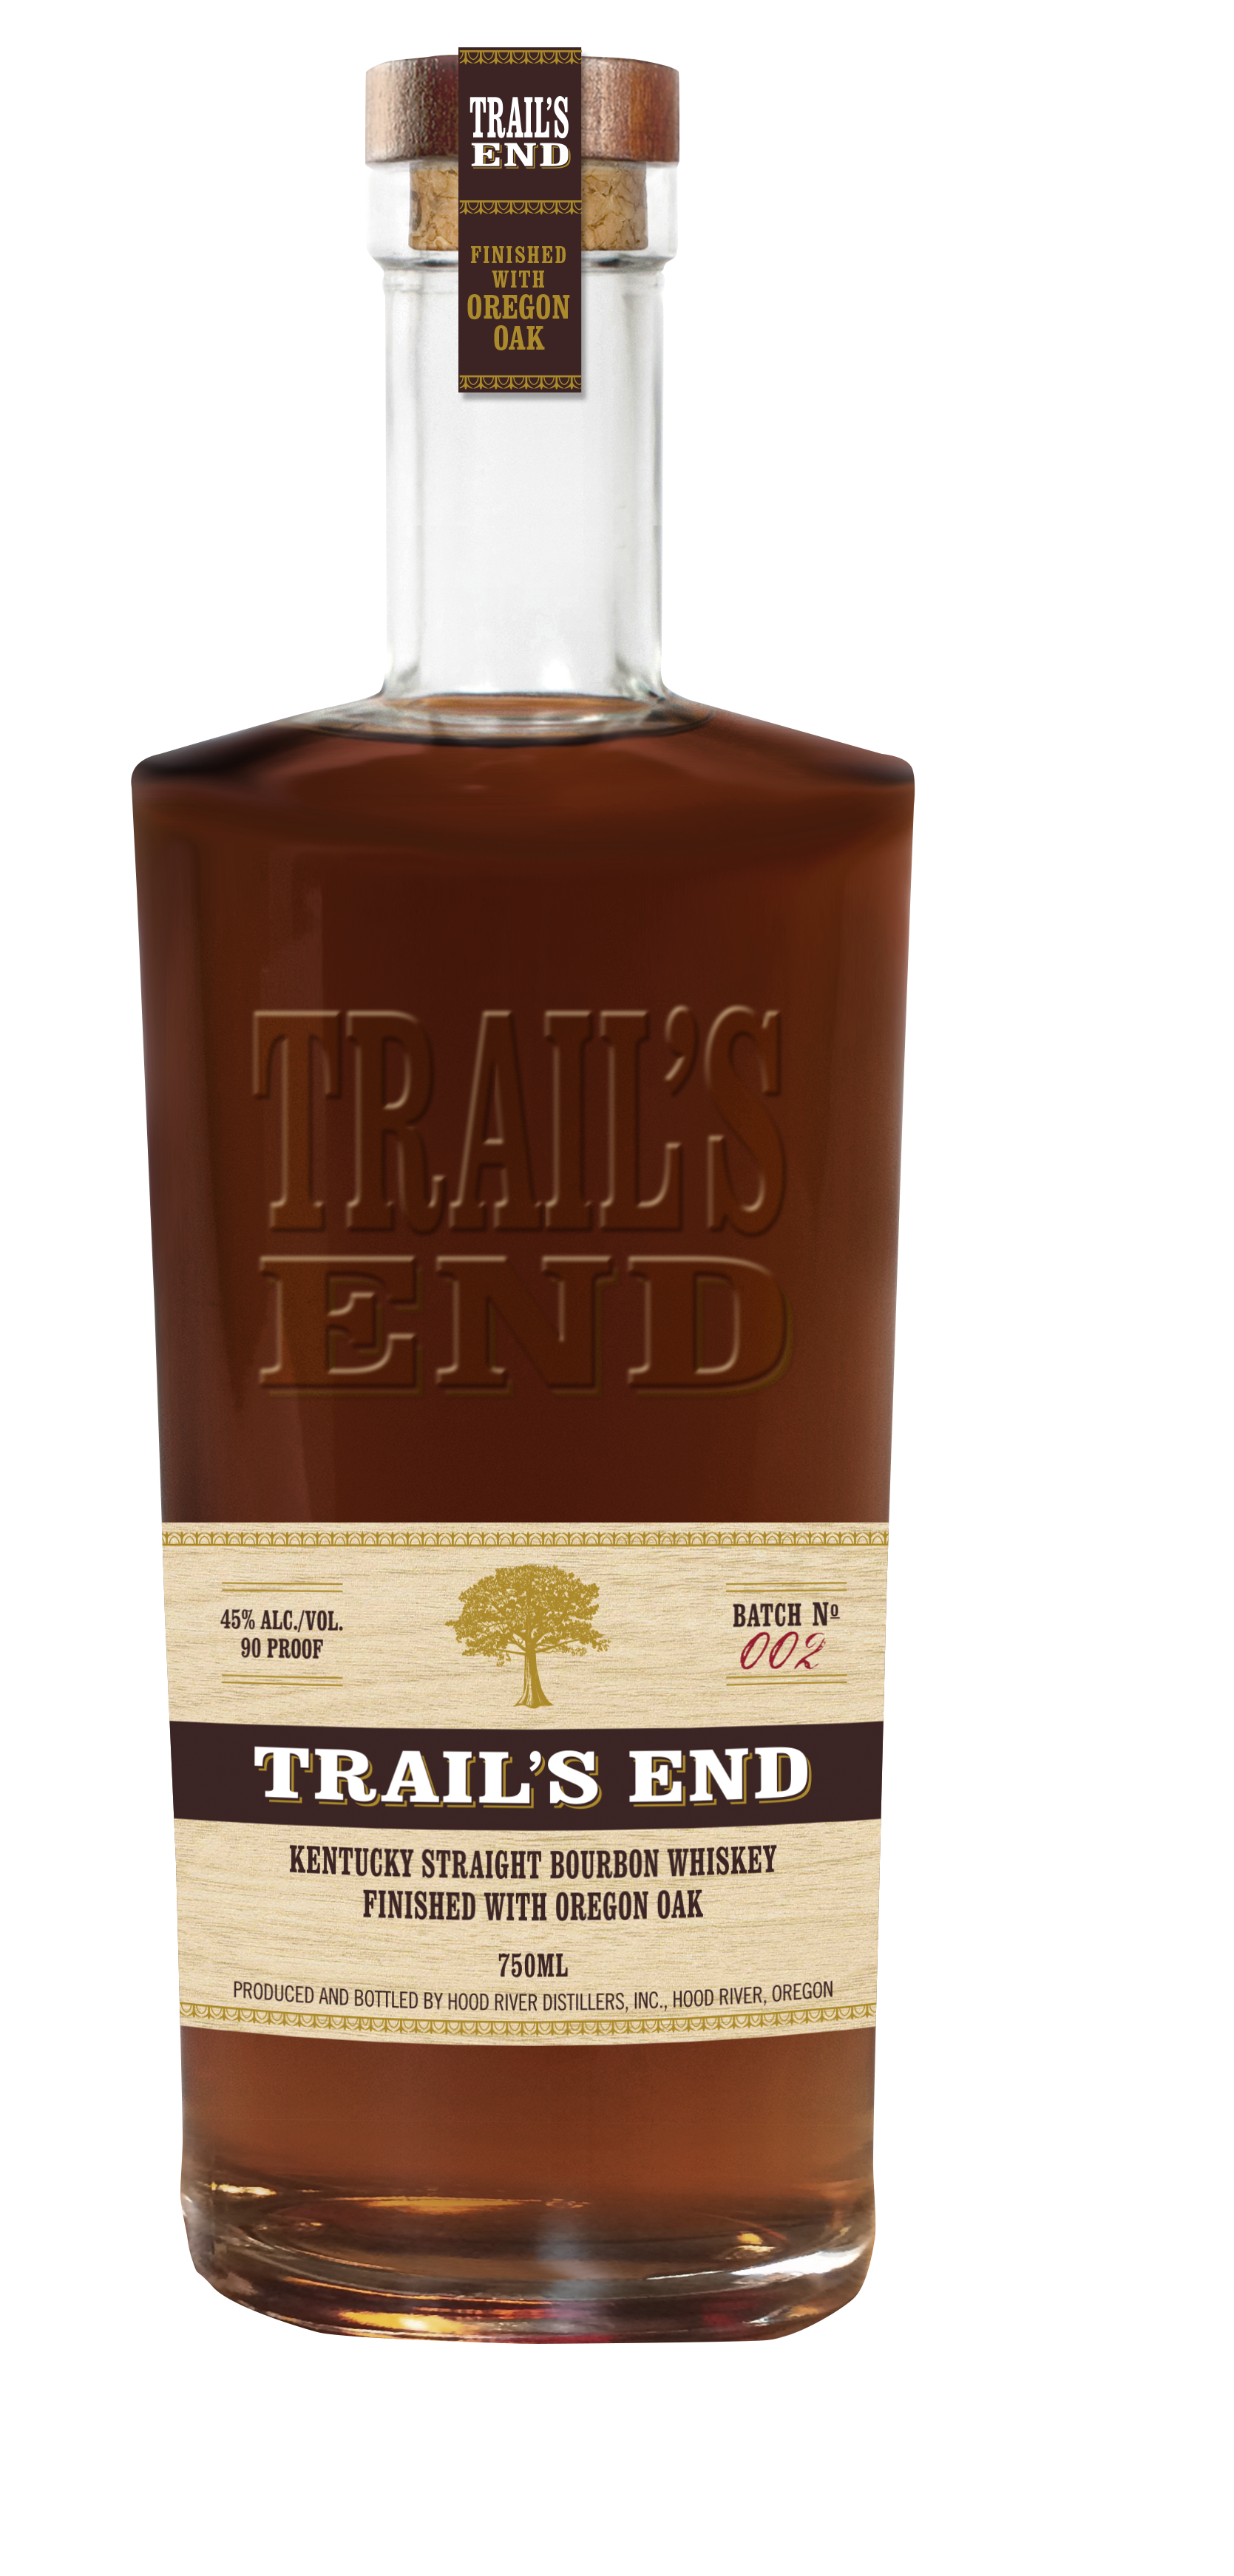 Hood river distillers expands distribution of trail 39 s end for Kentucky craft bourbon trail